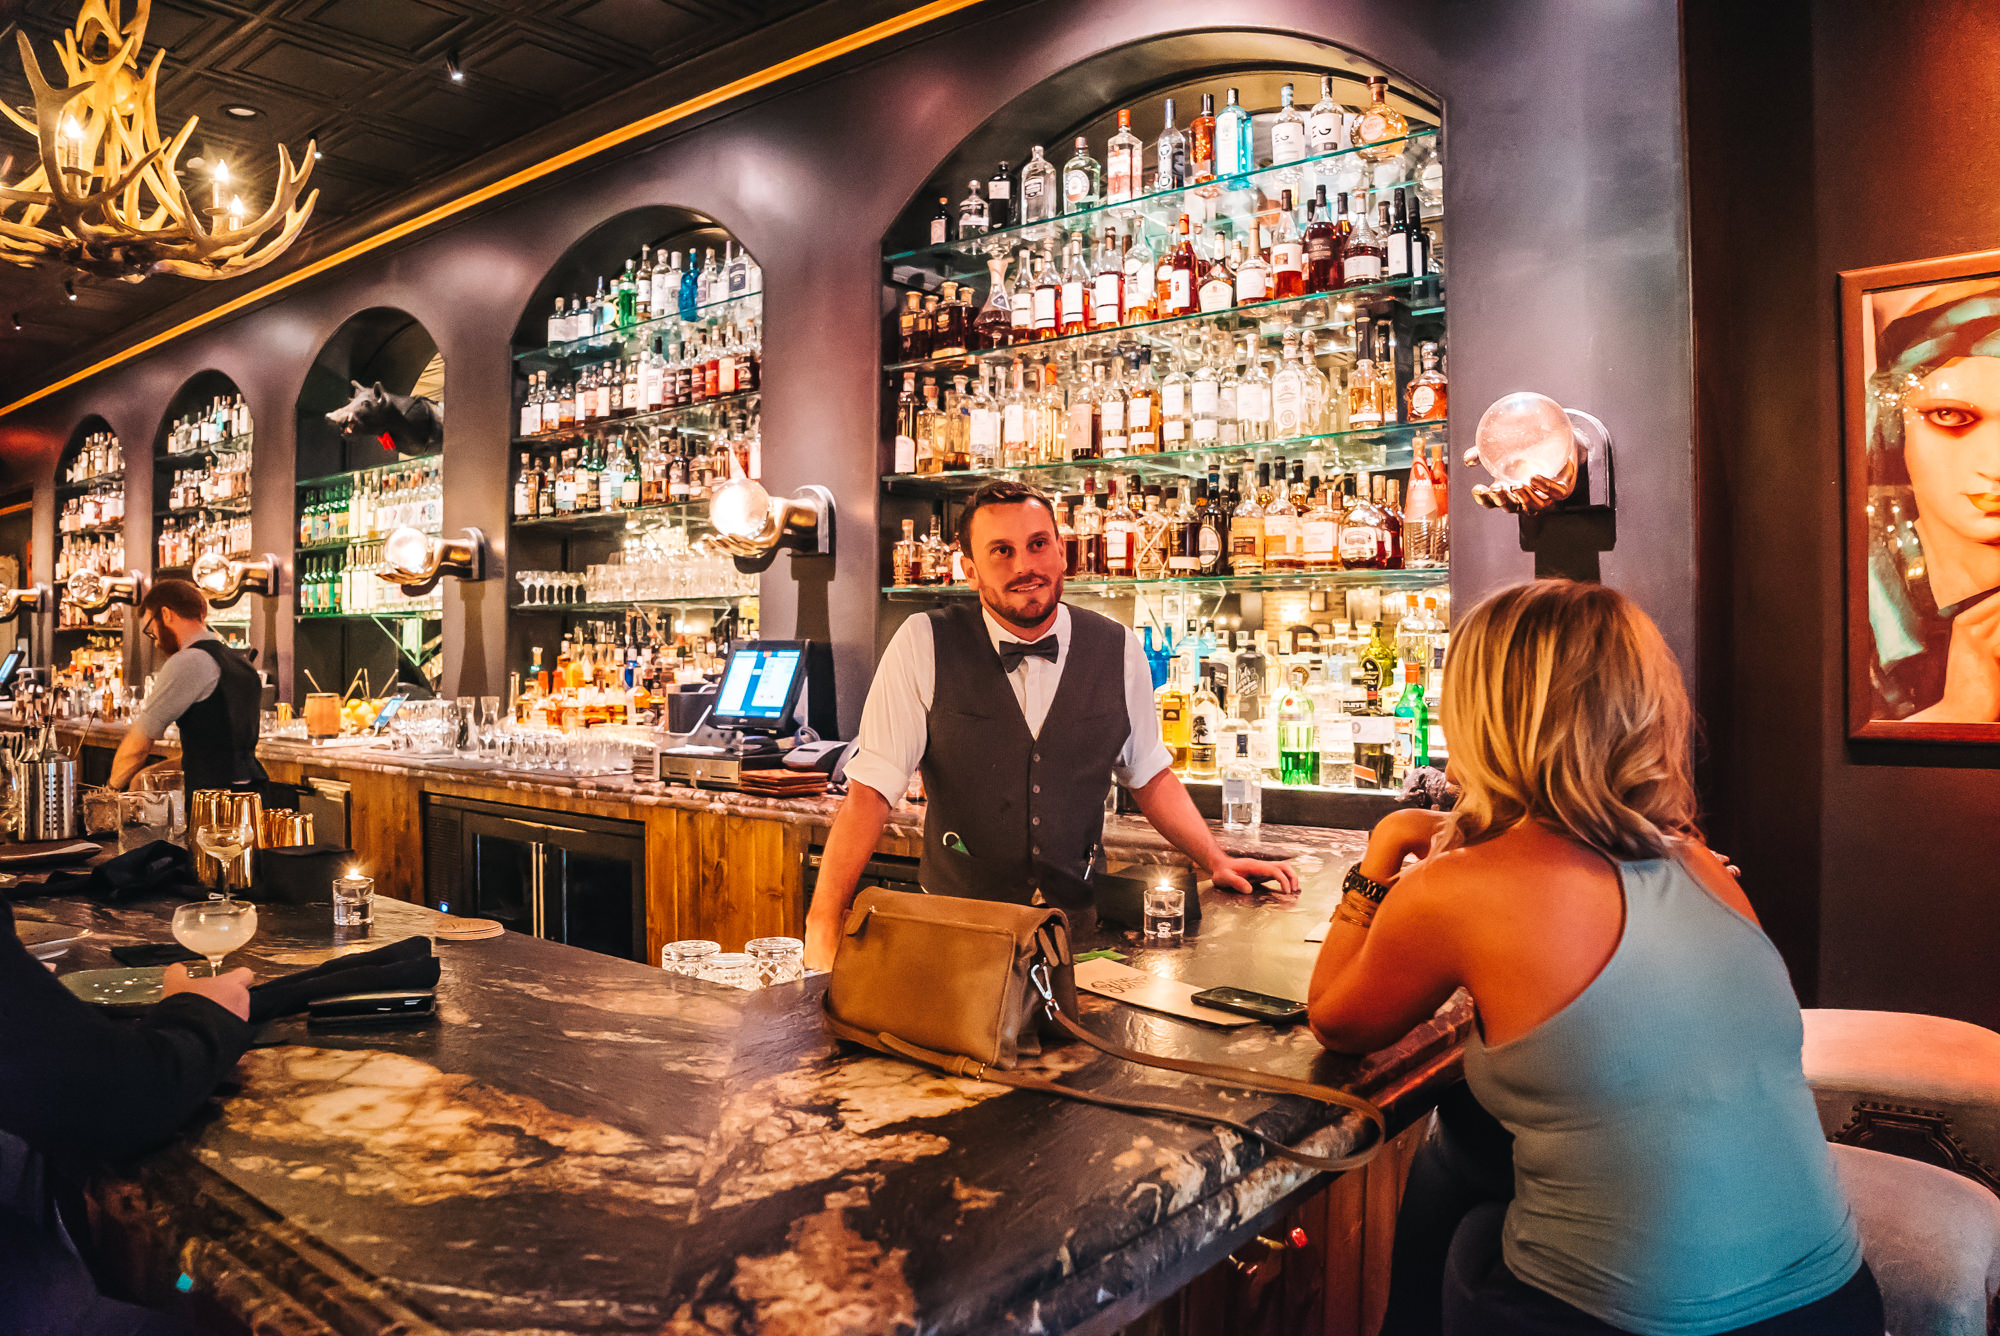 Friendly and knowledgeable bartenders at C.W.'s Gin Joint